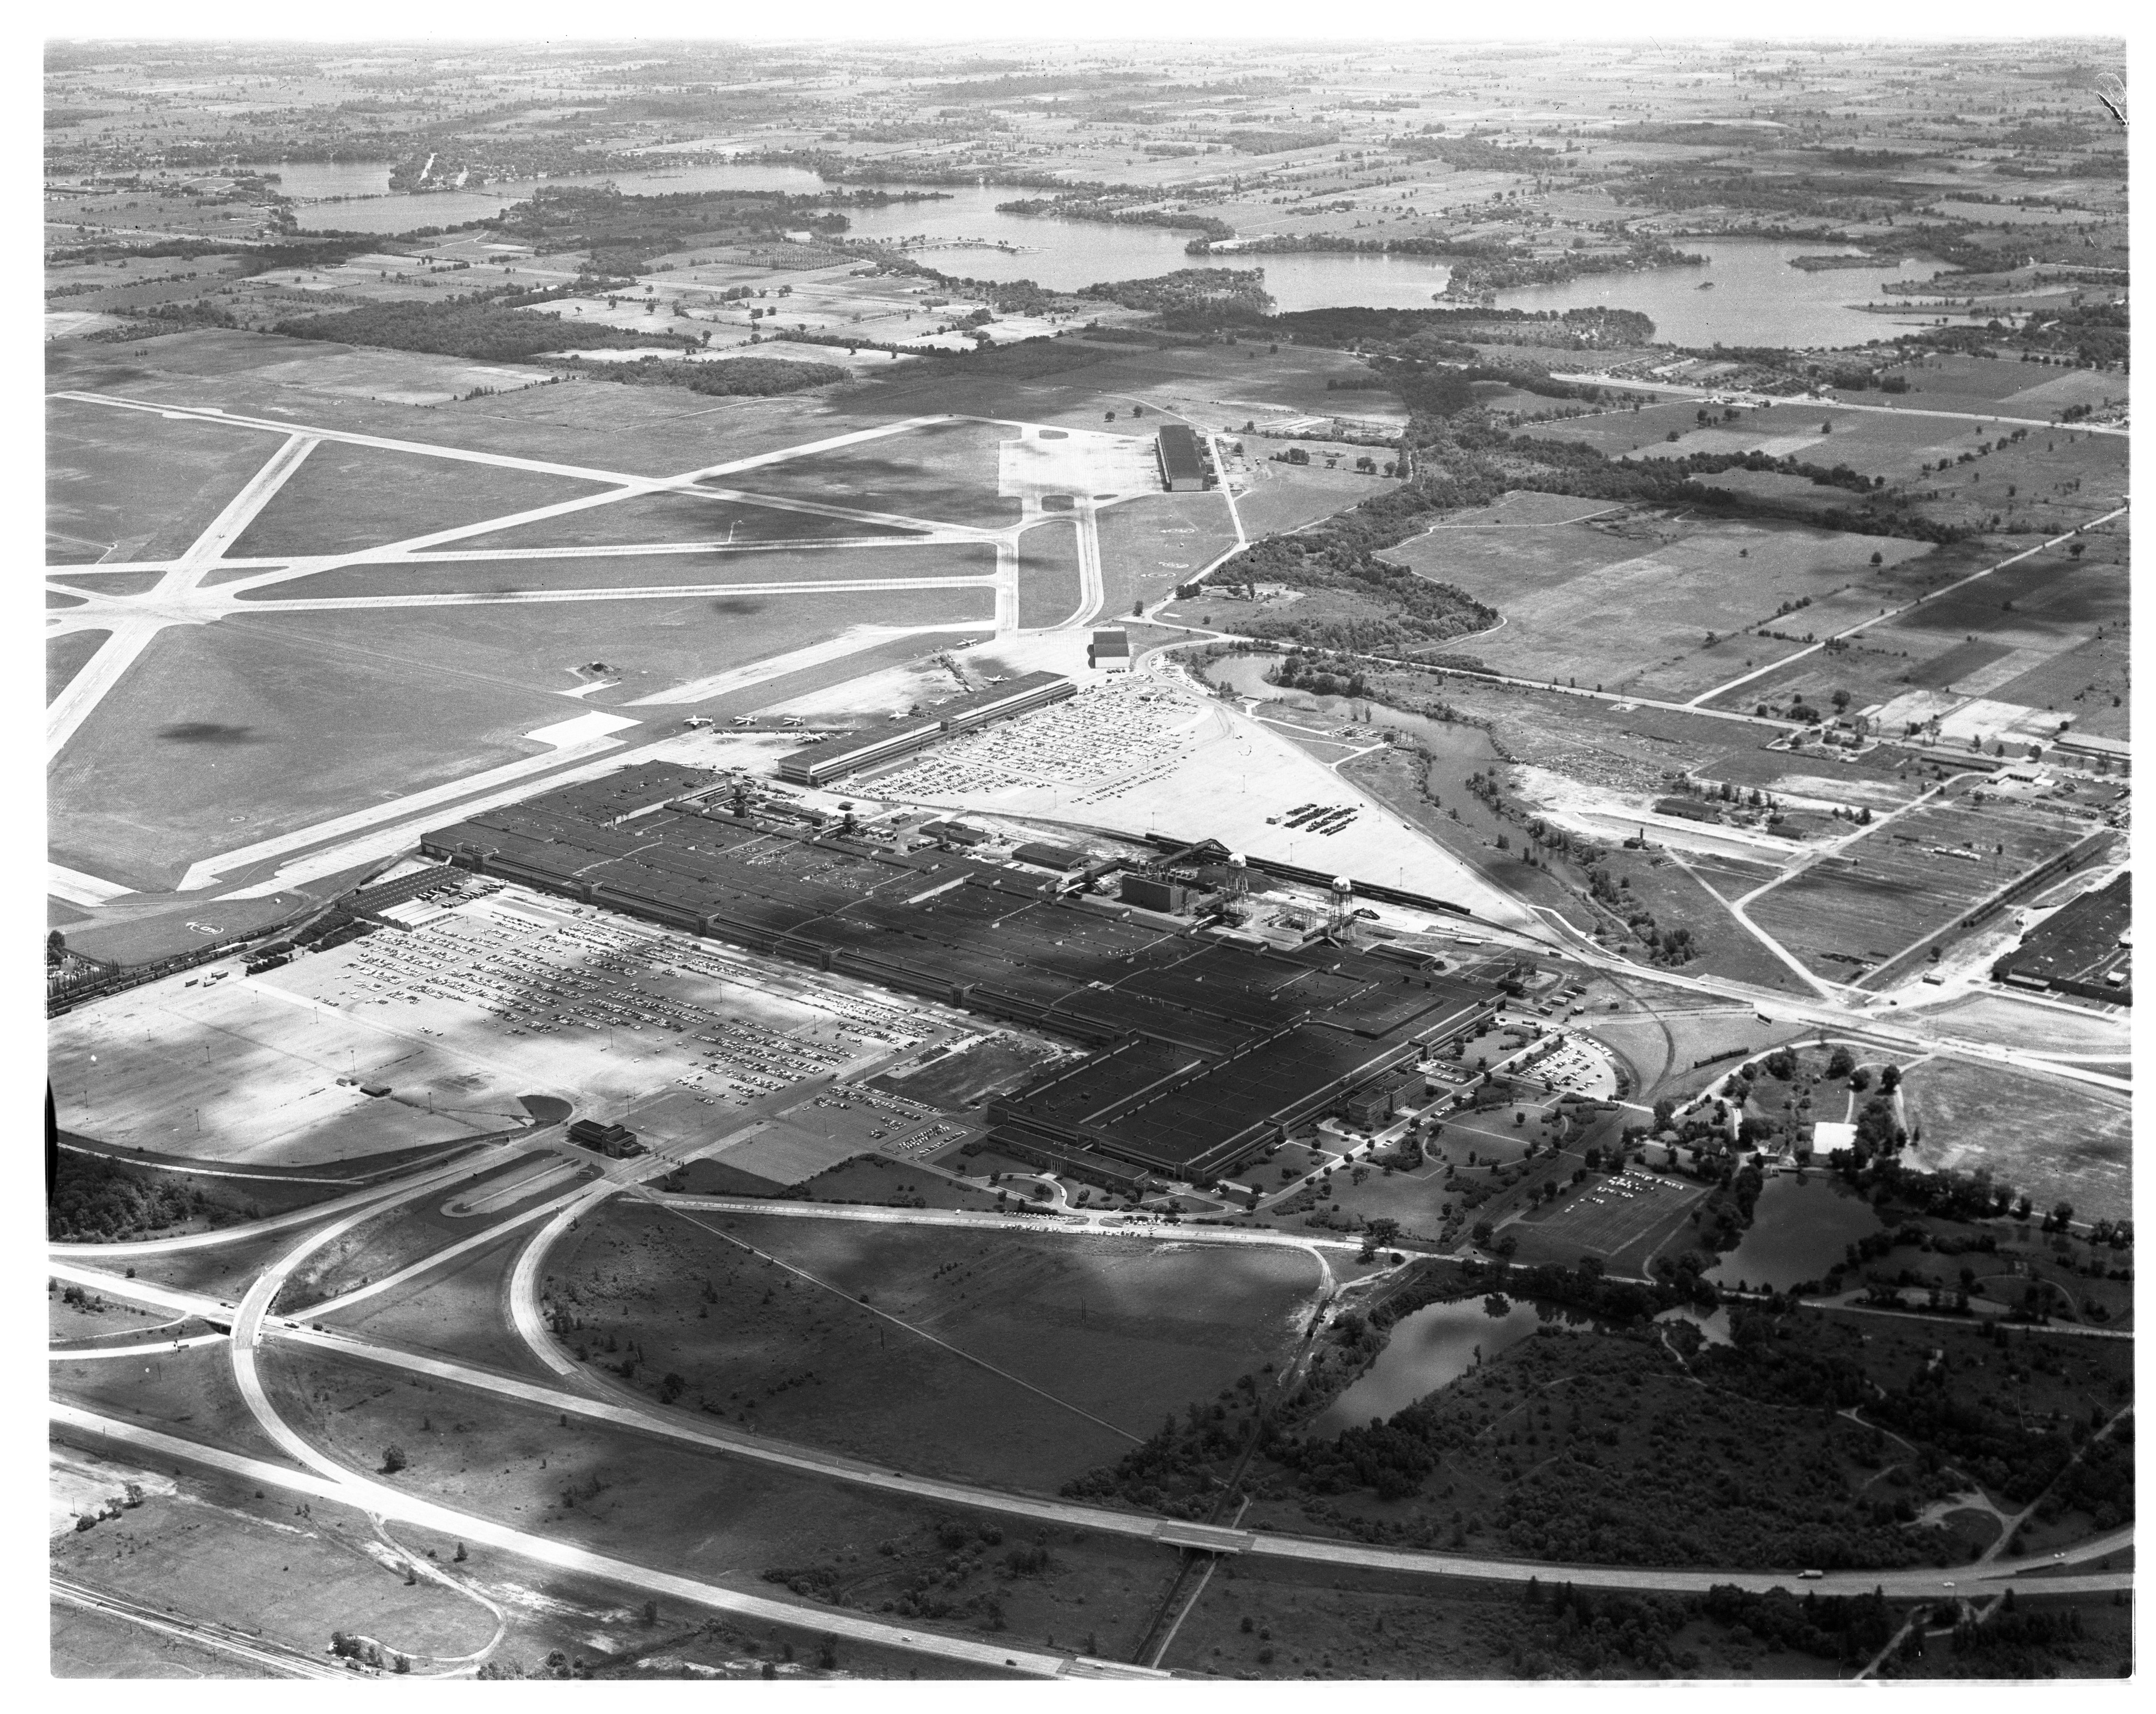 Aerial Photograph of the Willow Run General Motors Plant, Ypsilanti Township, July 1956 image